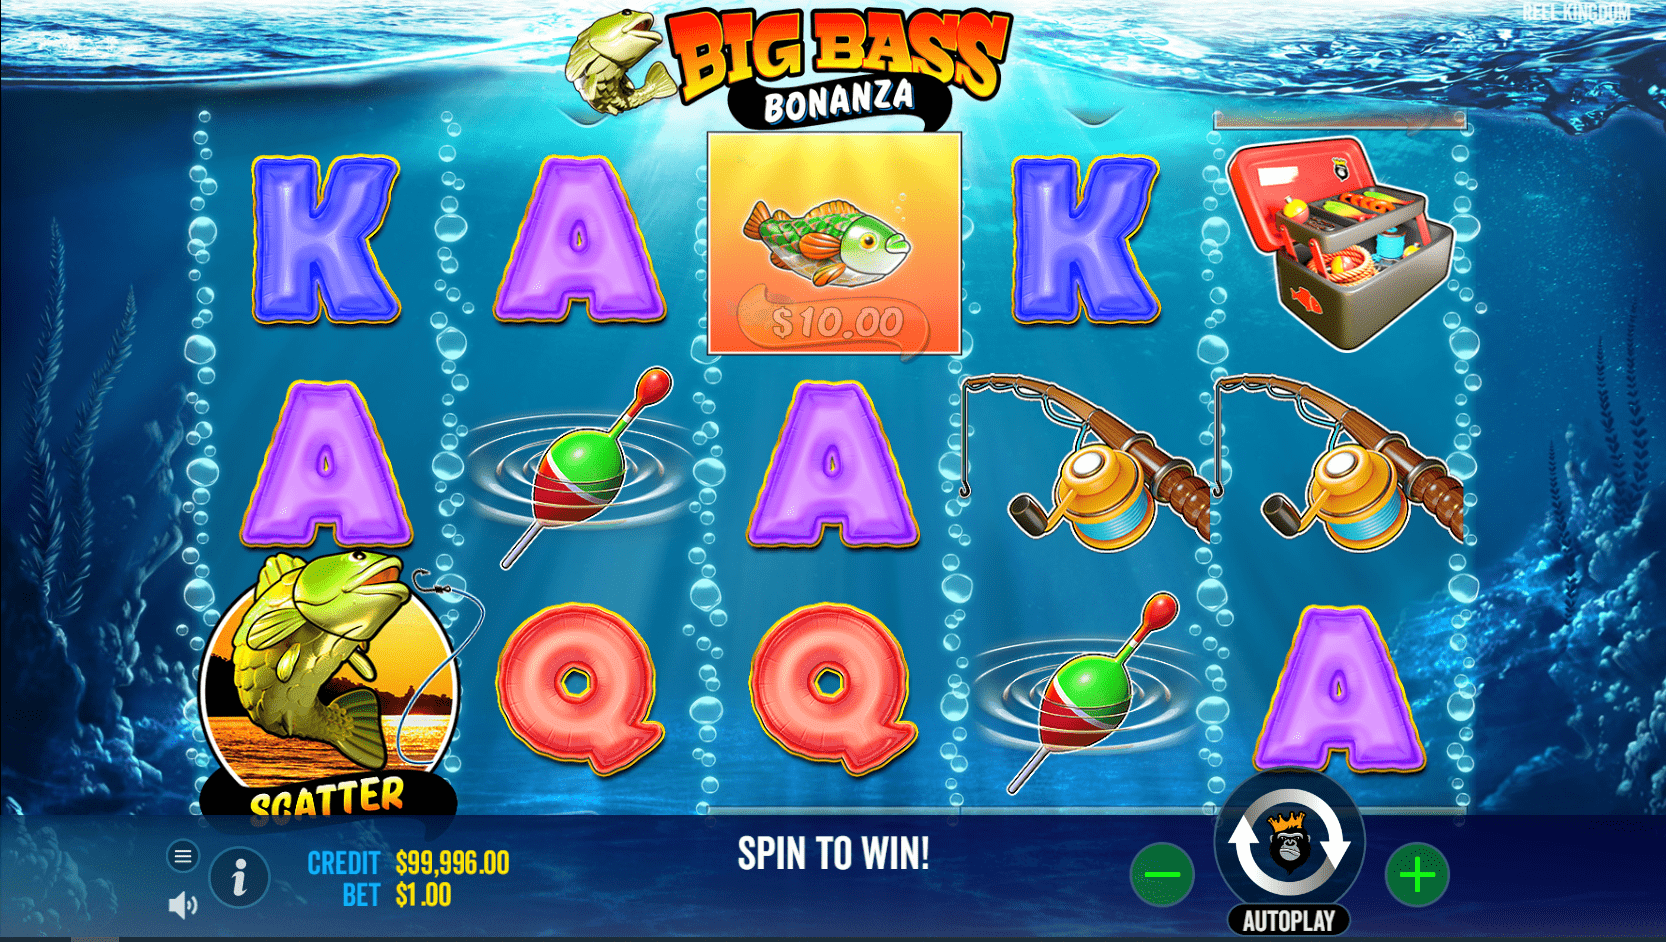 Big Bass Bonanza Video Slot base game